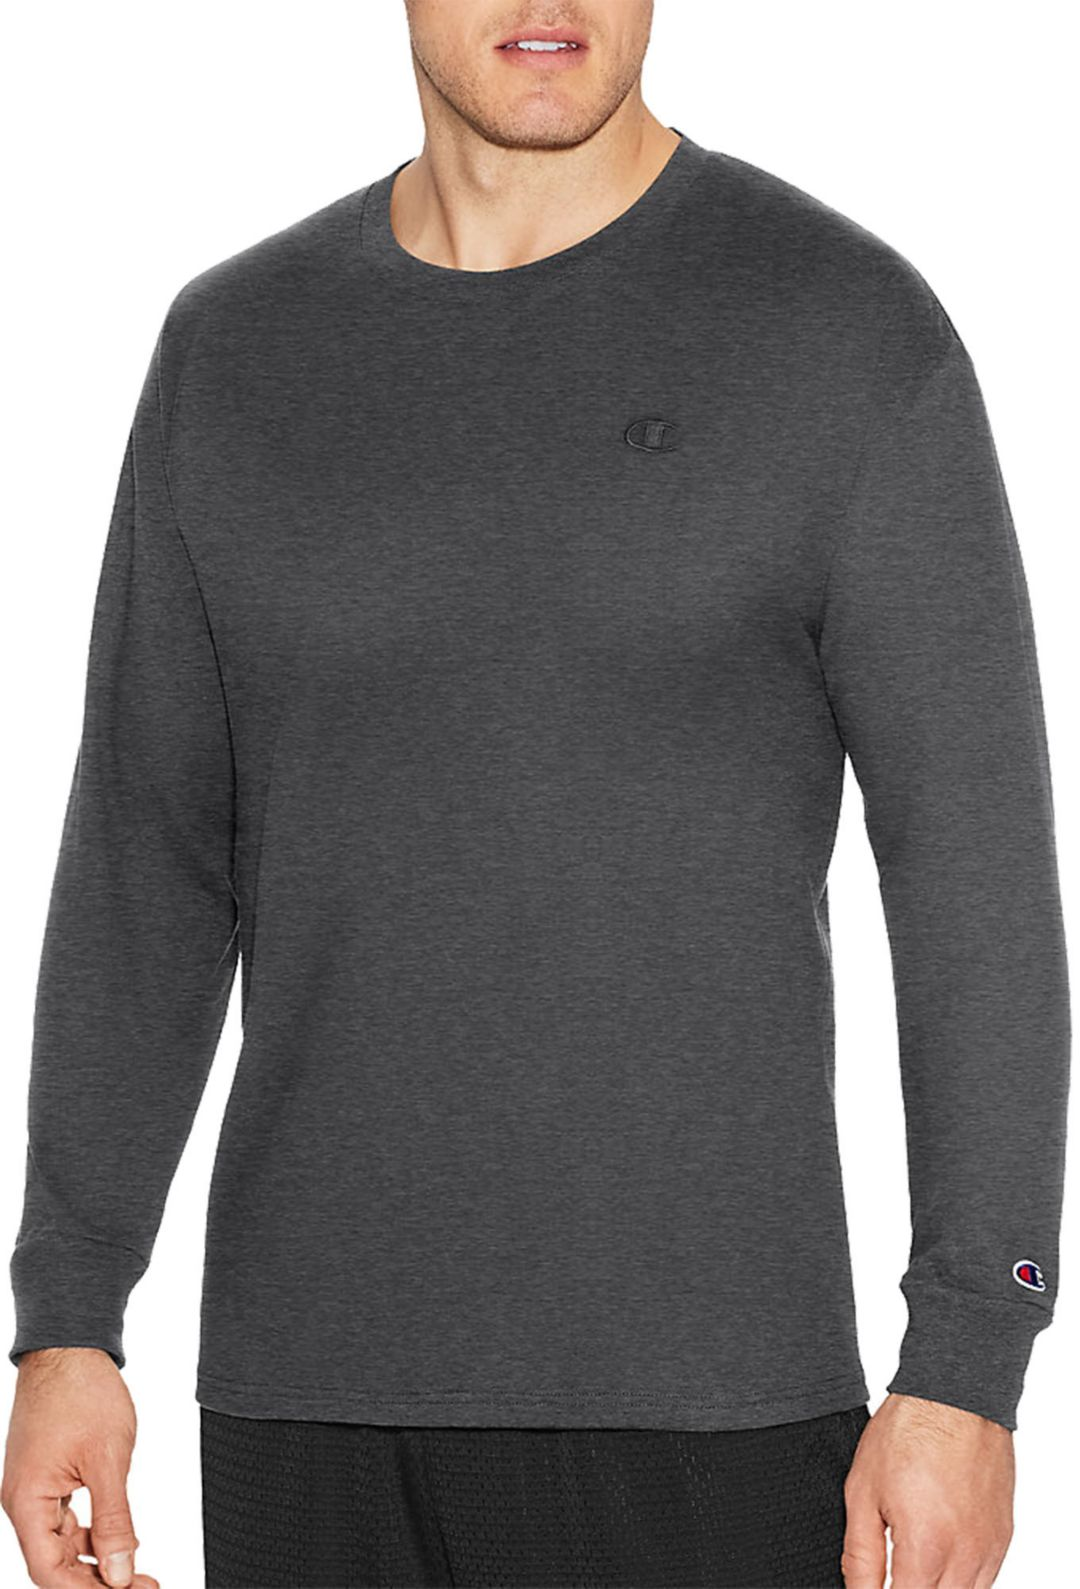 abf0051d Champion Men's Classic Cotton Long Sleeve Shirt | DICK'S Sporting Goods